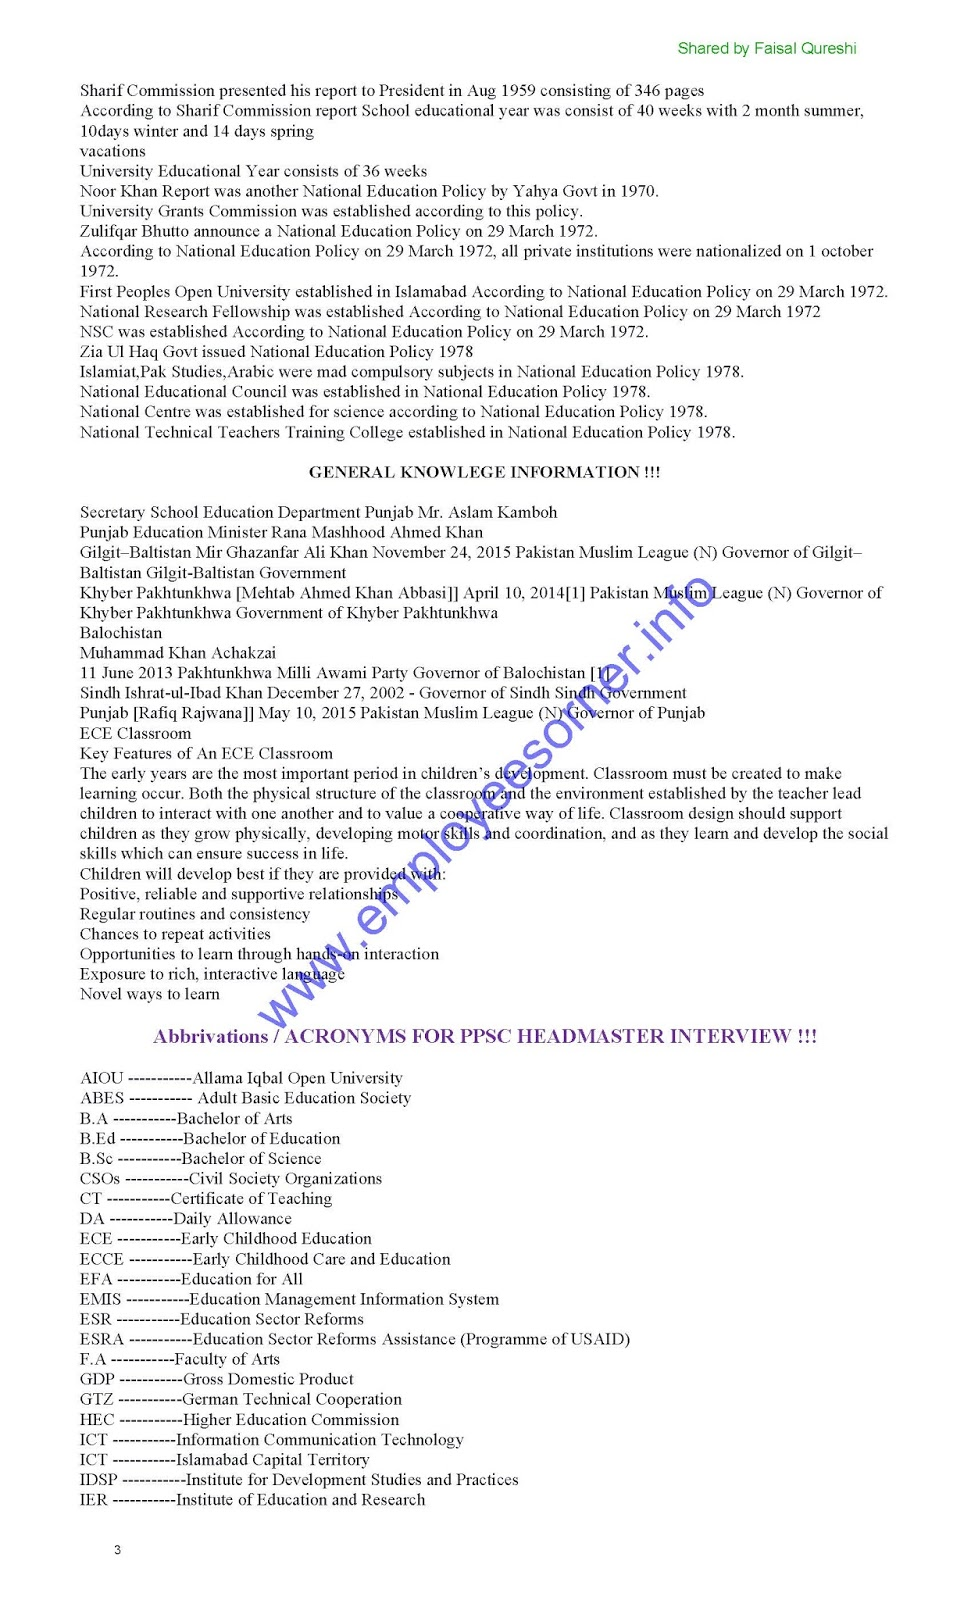 200+ PPSC Interview Questions, Abbreviations and GK Useful